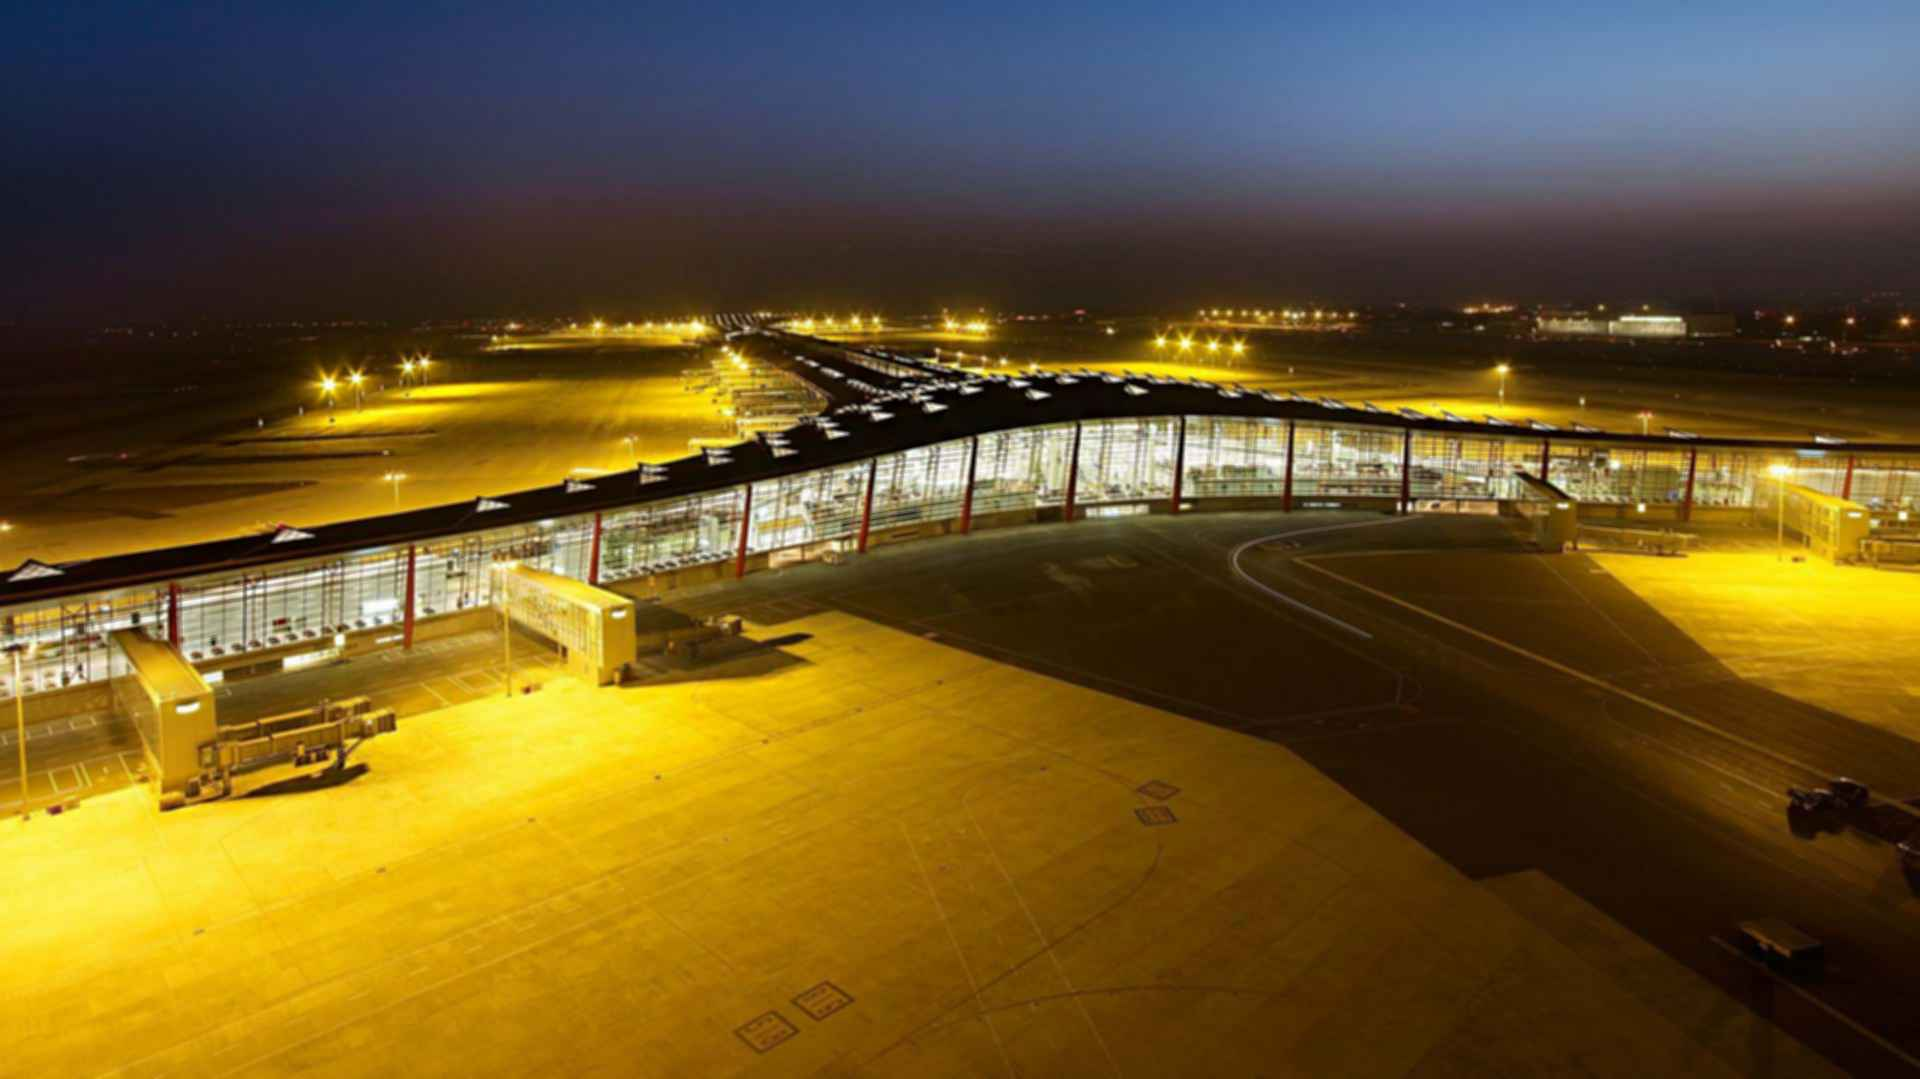 Beijing Capital International Airport - Exterior